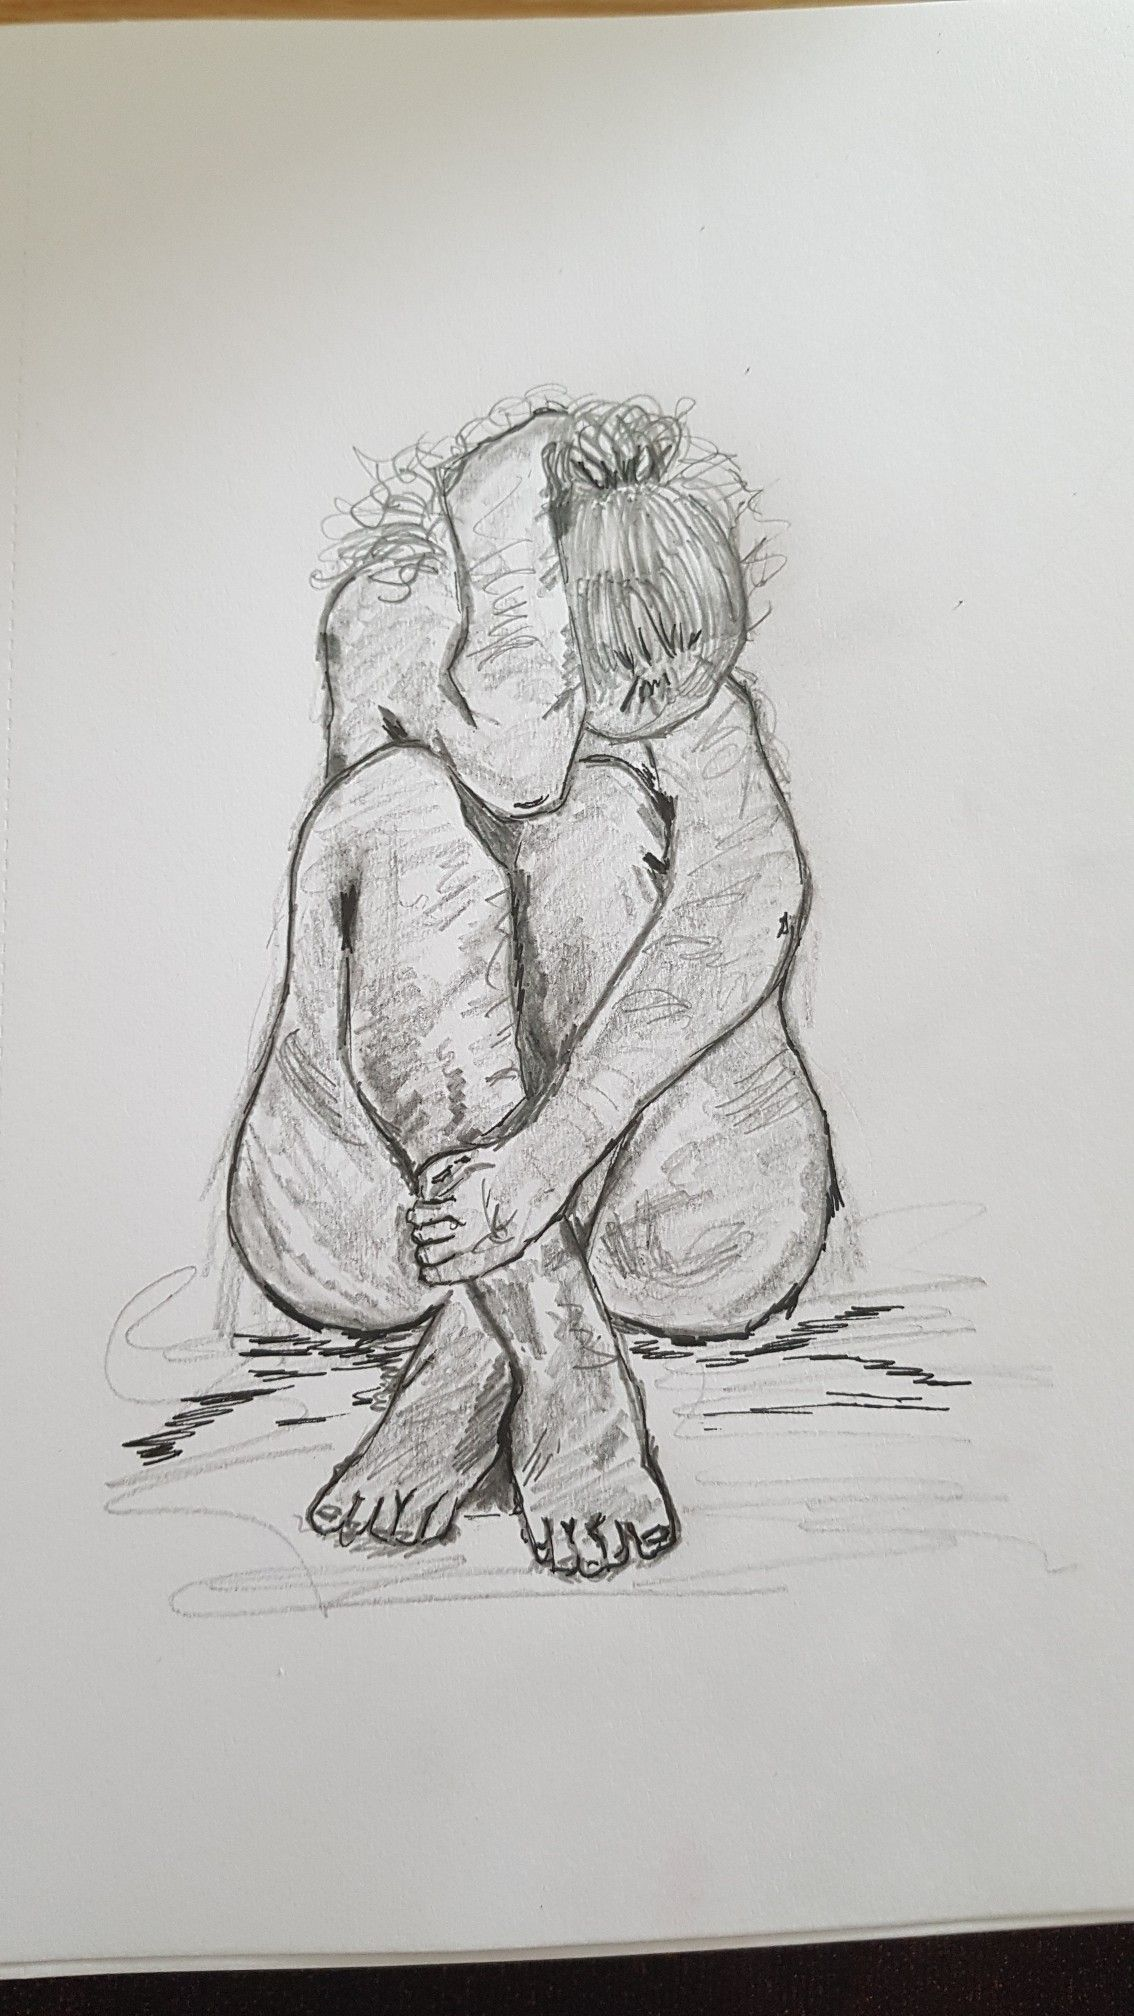 Lonely art scared pain mental health illness sad female pencil